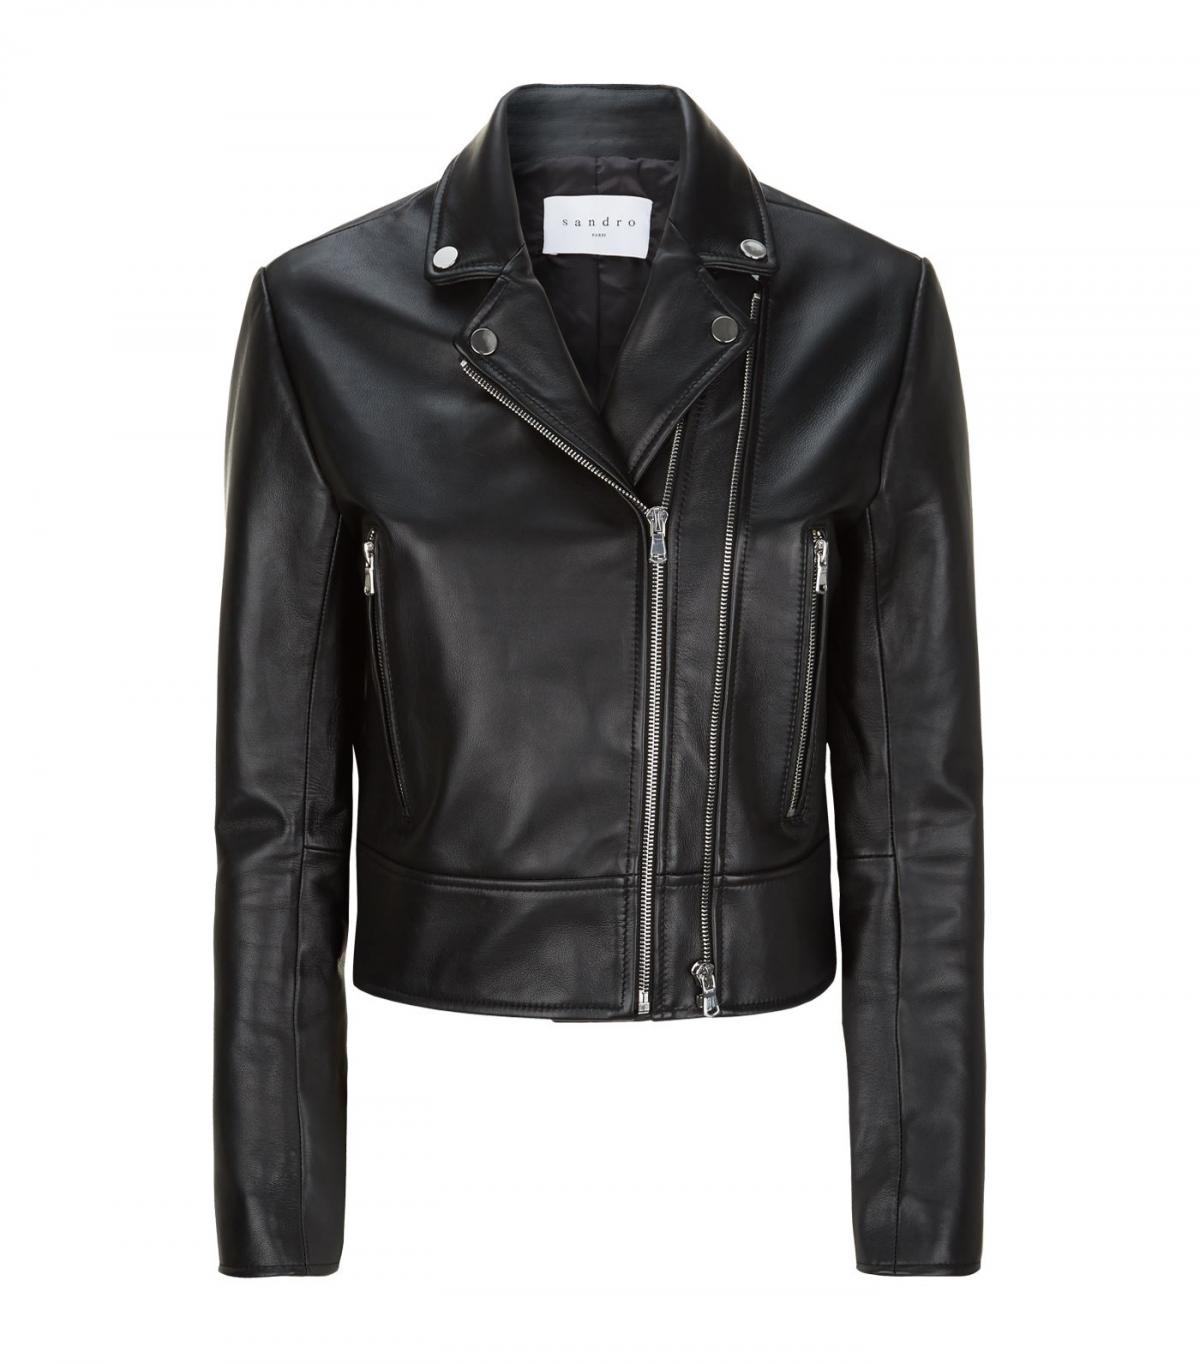 black-sandro-leather-jacket-womens-jackets-black.jpg